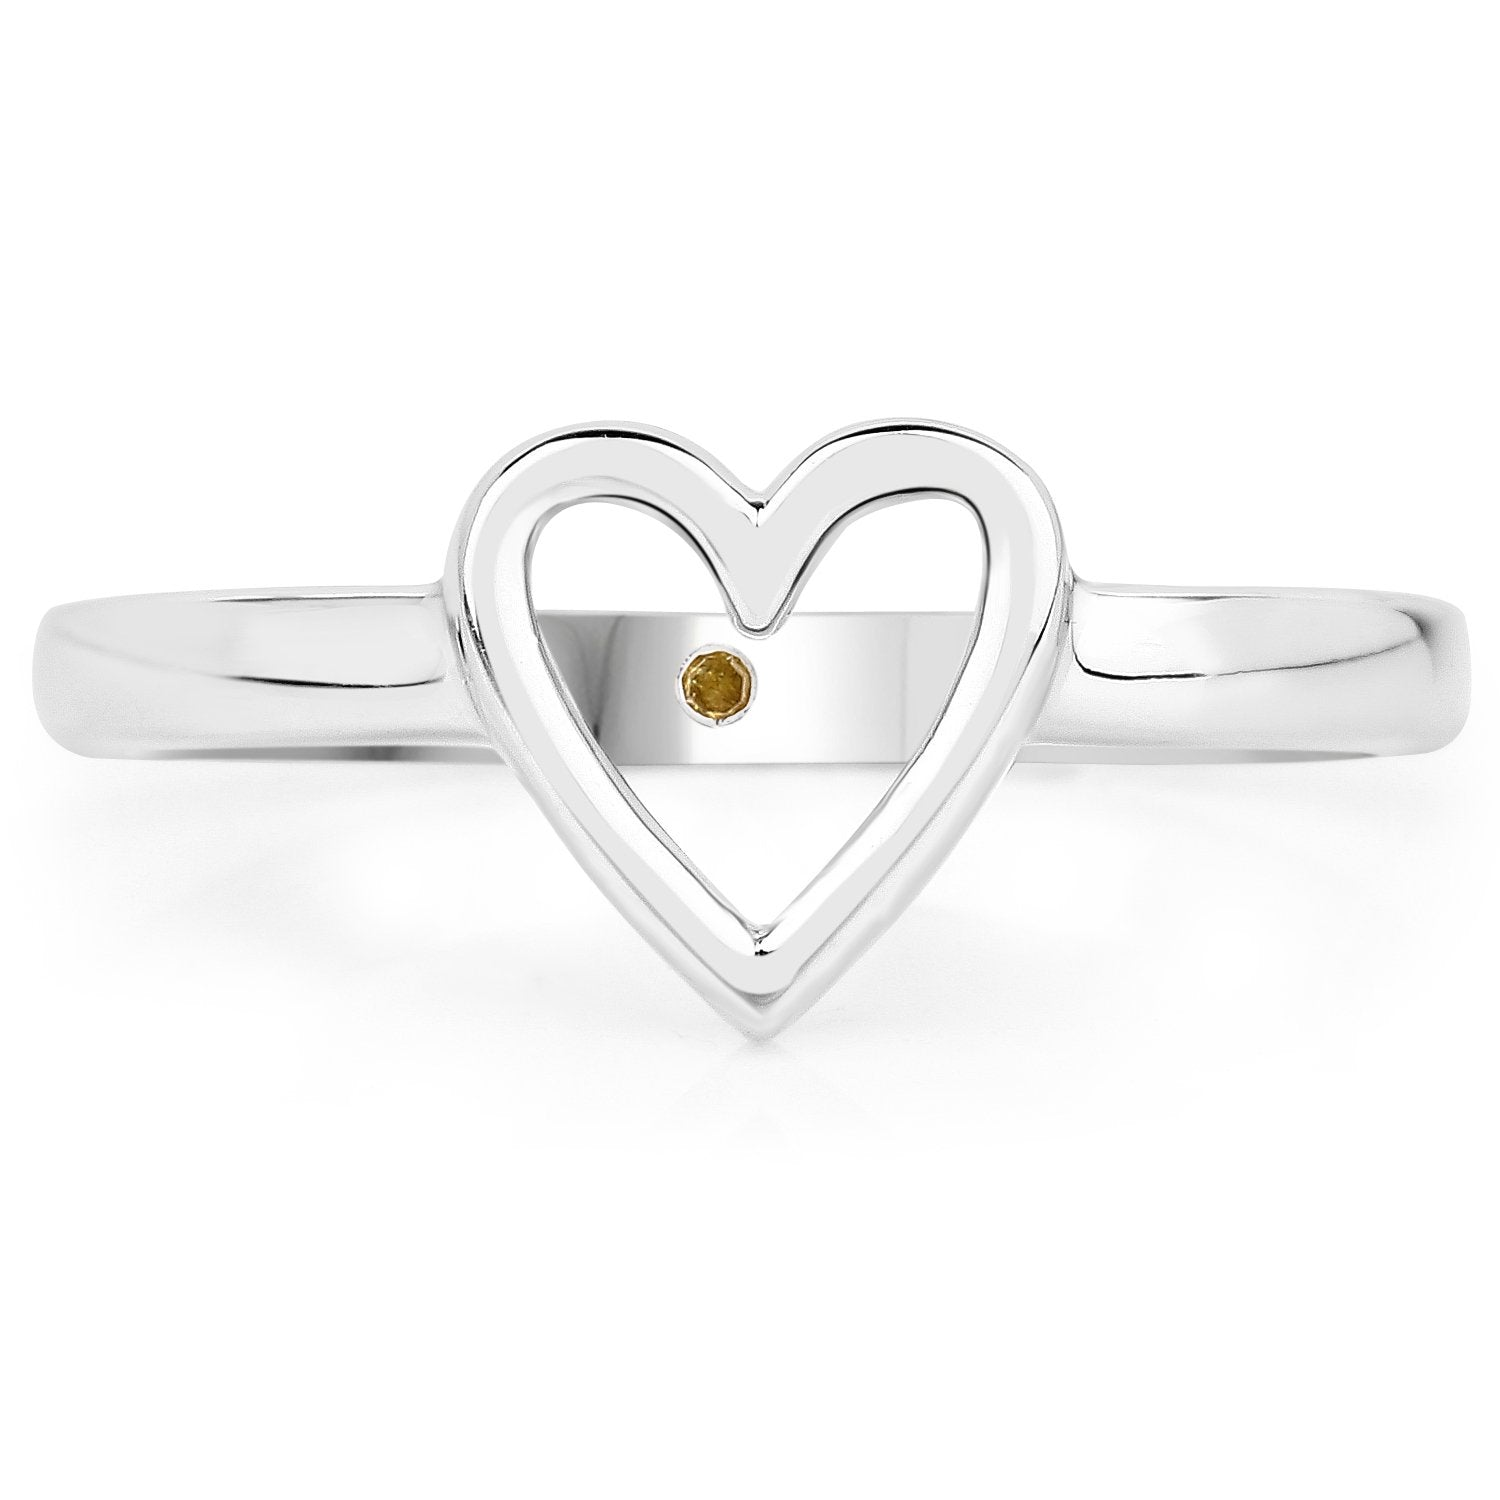 LoveHuang 0.01 Carats Genuine Yellow Diamond (I-J, I2-I3) Heart Ring Solid .925 Sterling Silver With Rhodium Plating